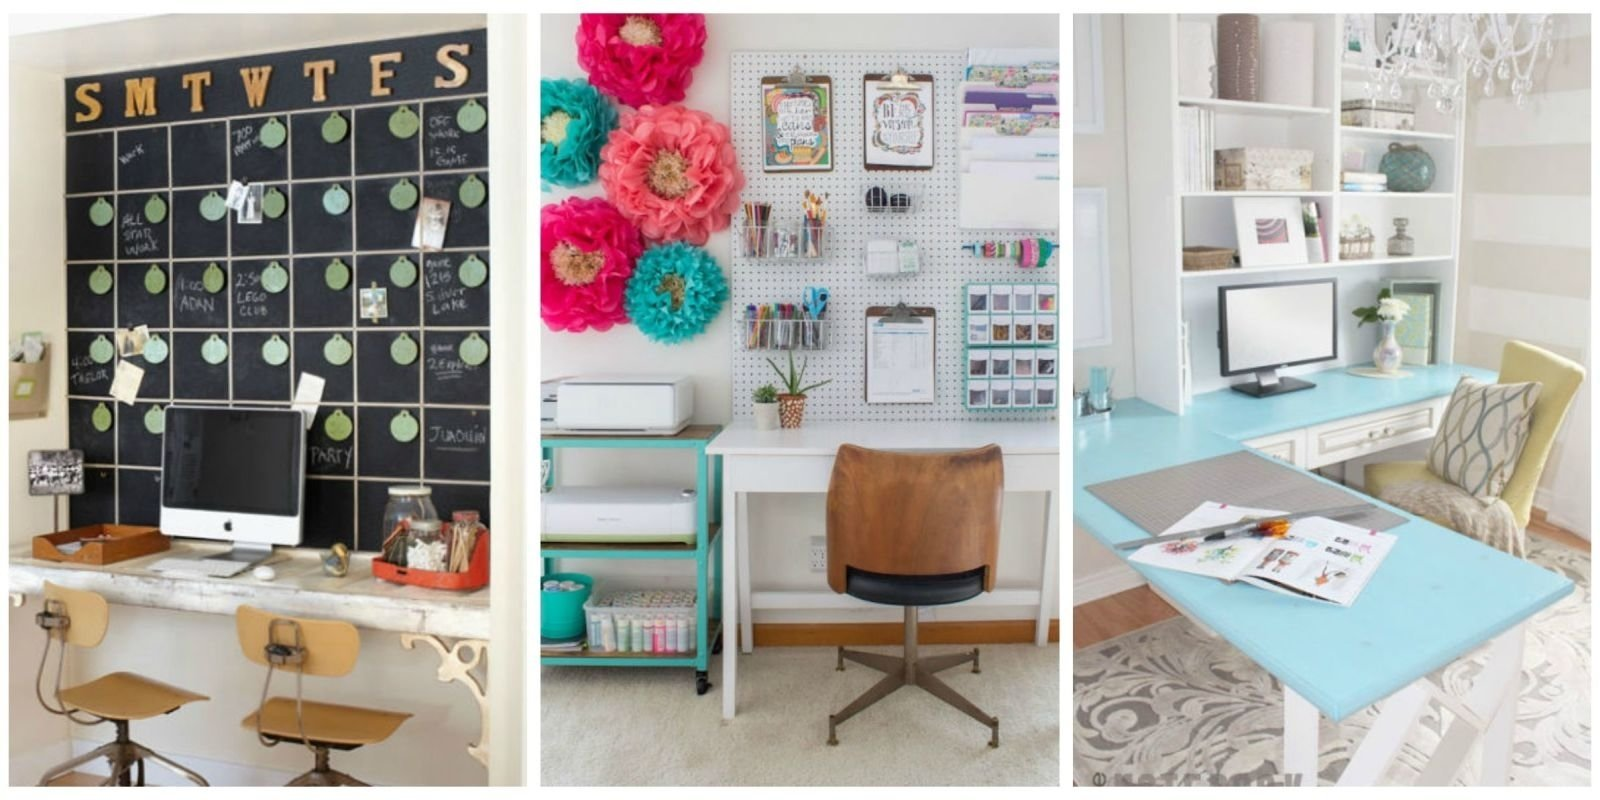 10 Best Decorating Ideas For Home Office home office decorating ideas wowruler 1 2020